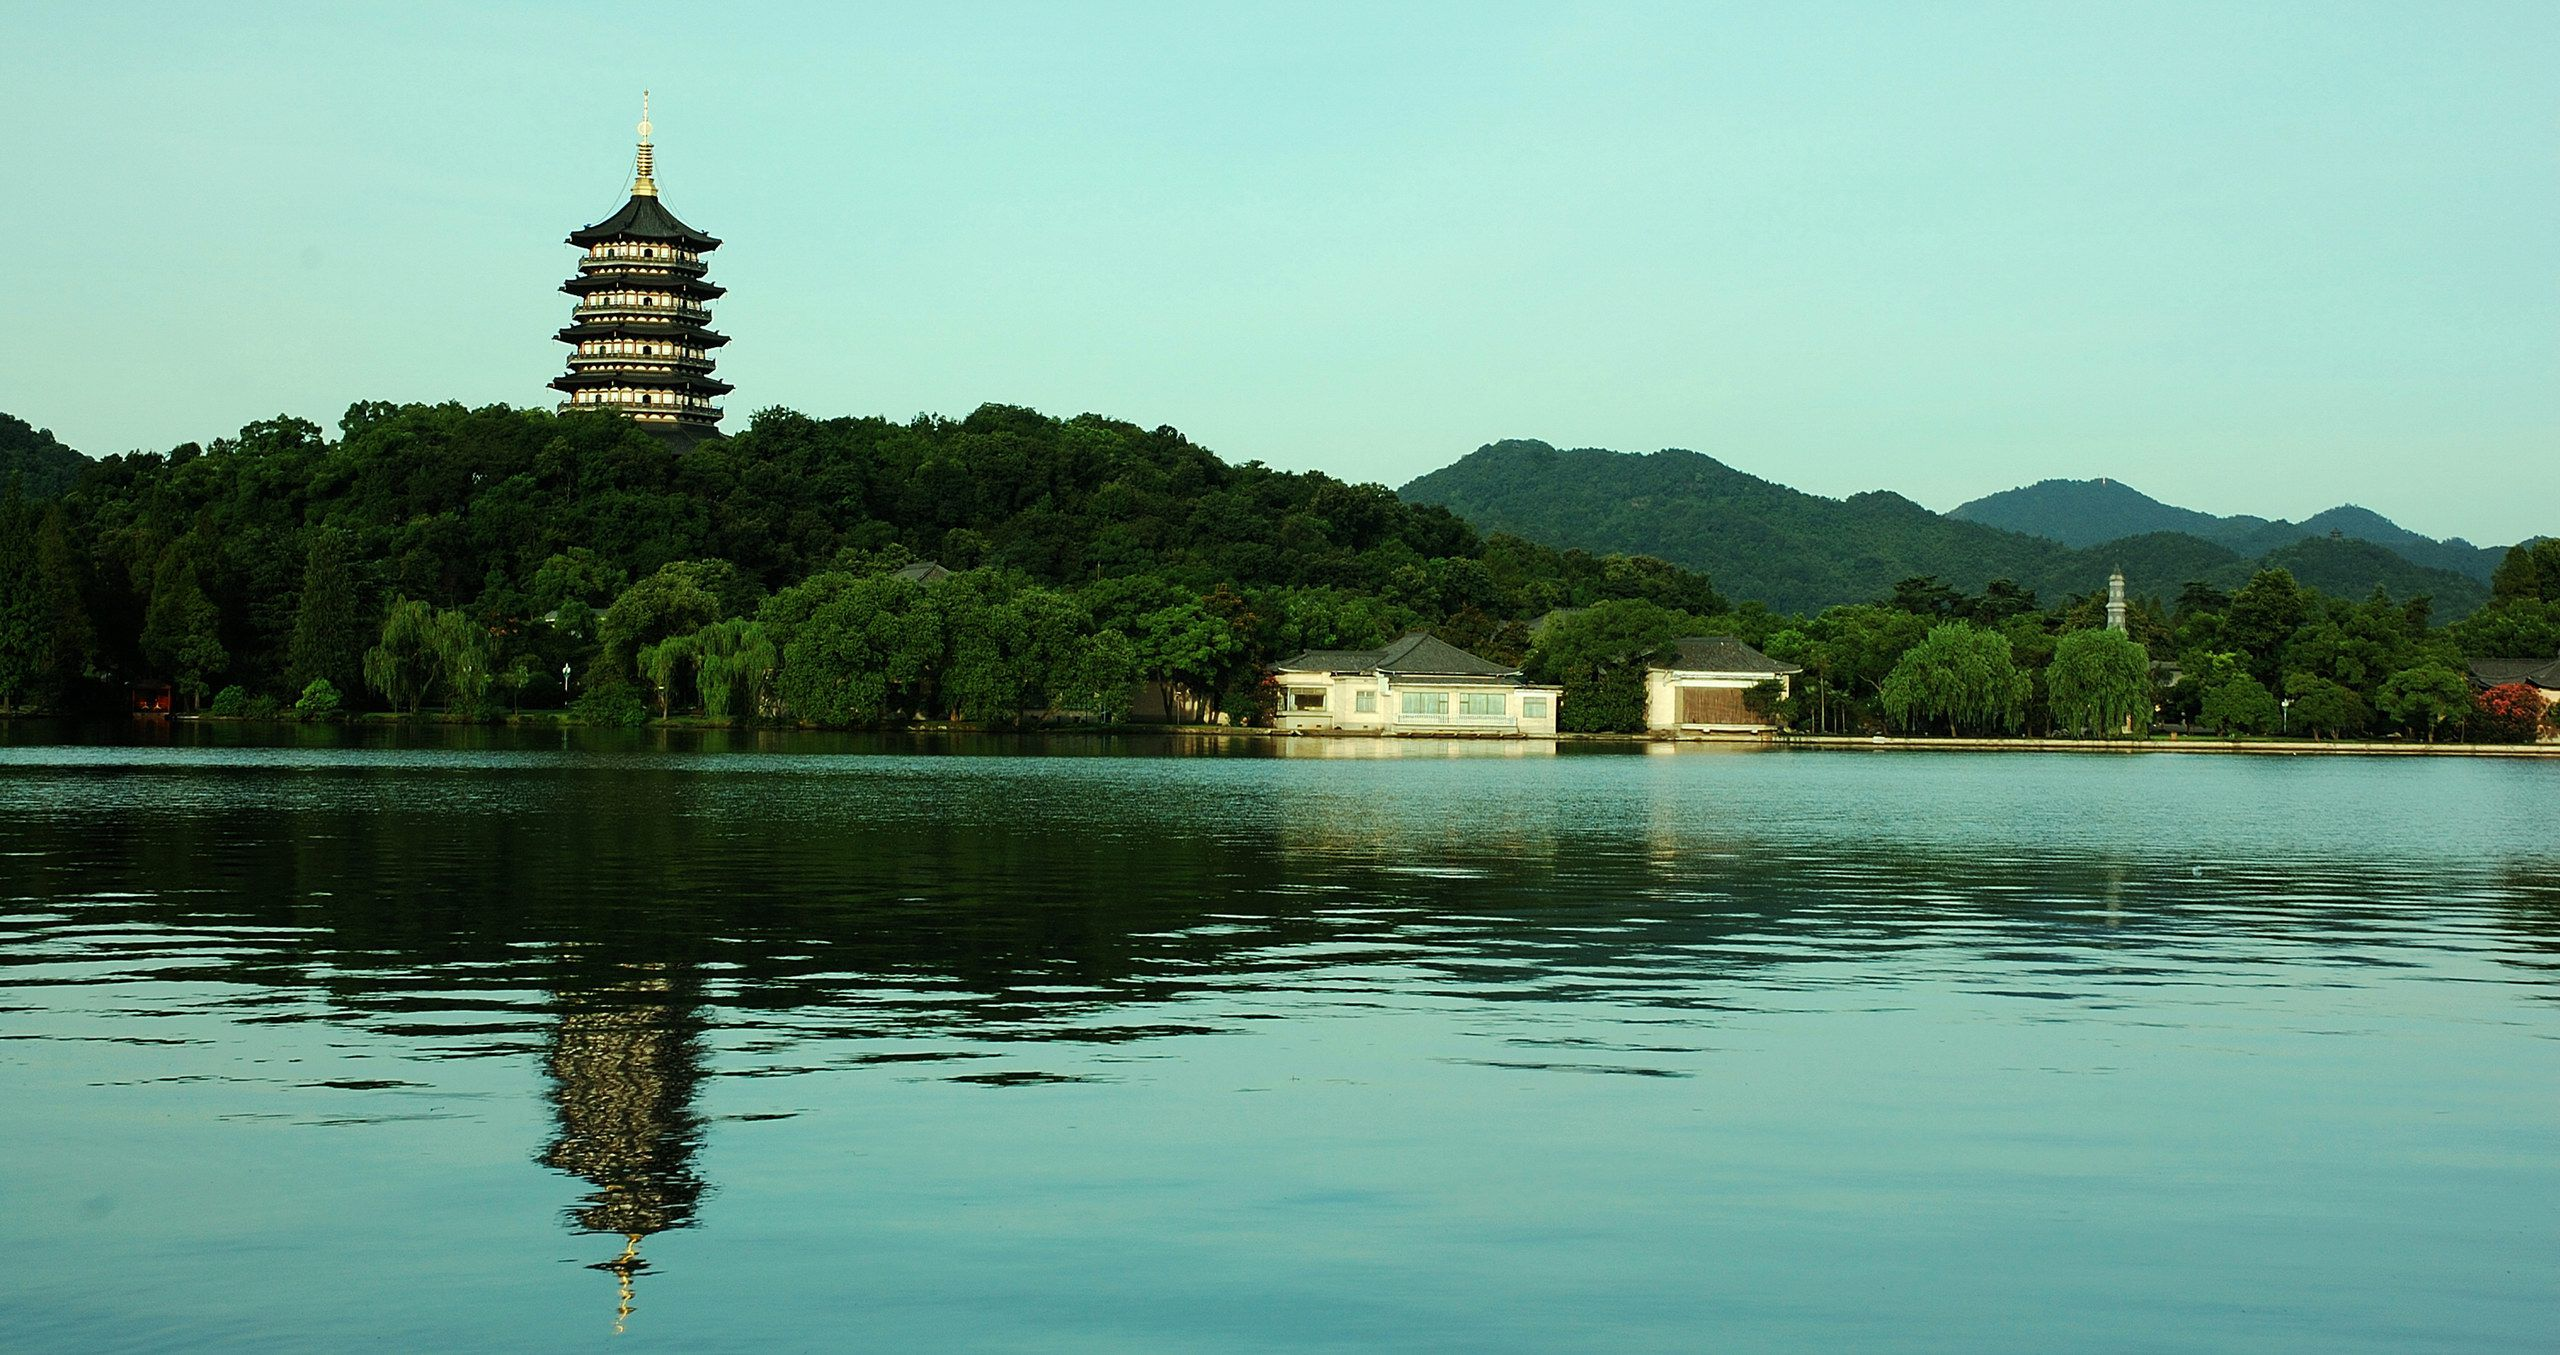 The West Lake In City Of Hangzhou